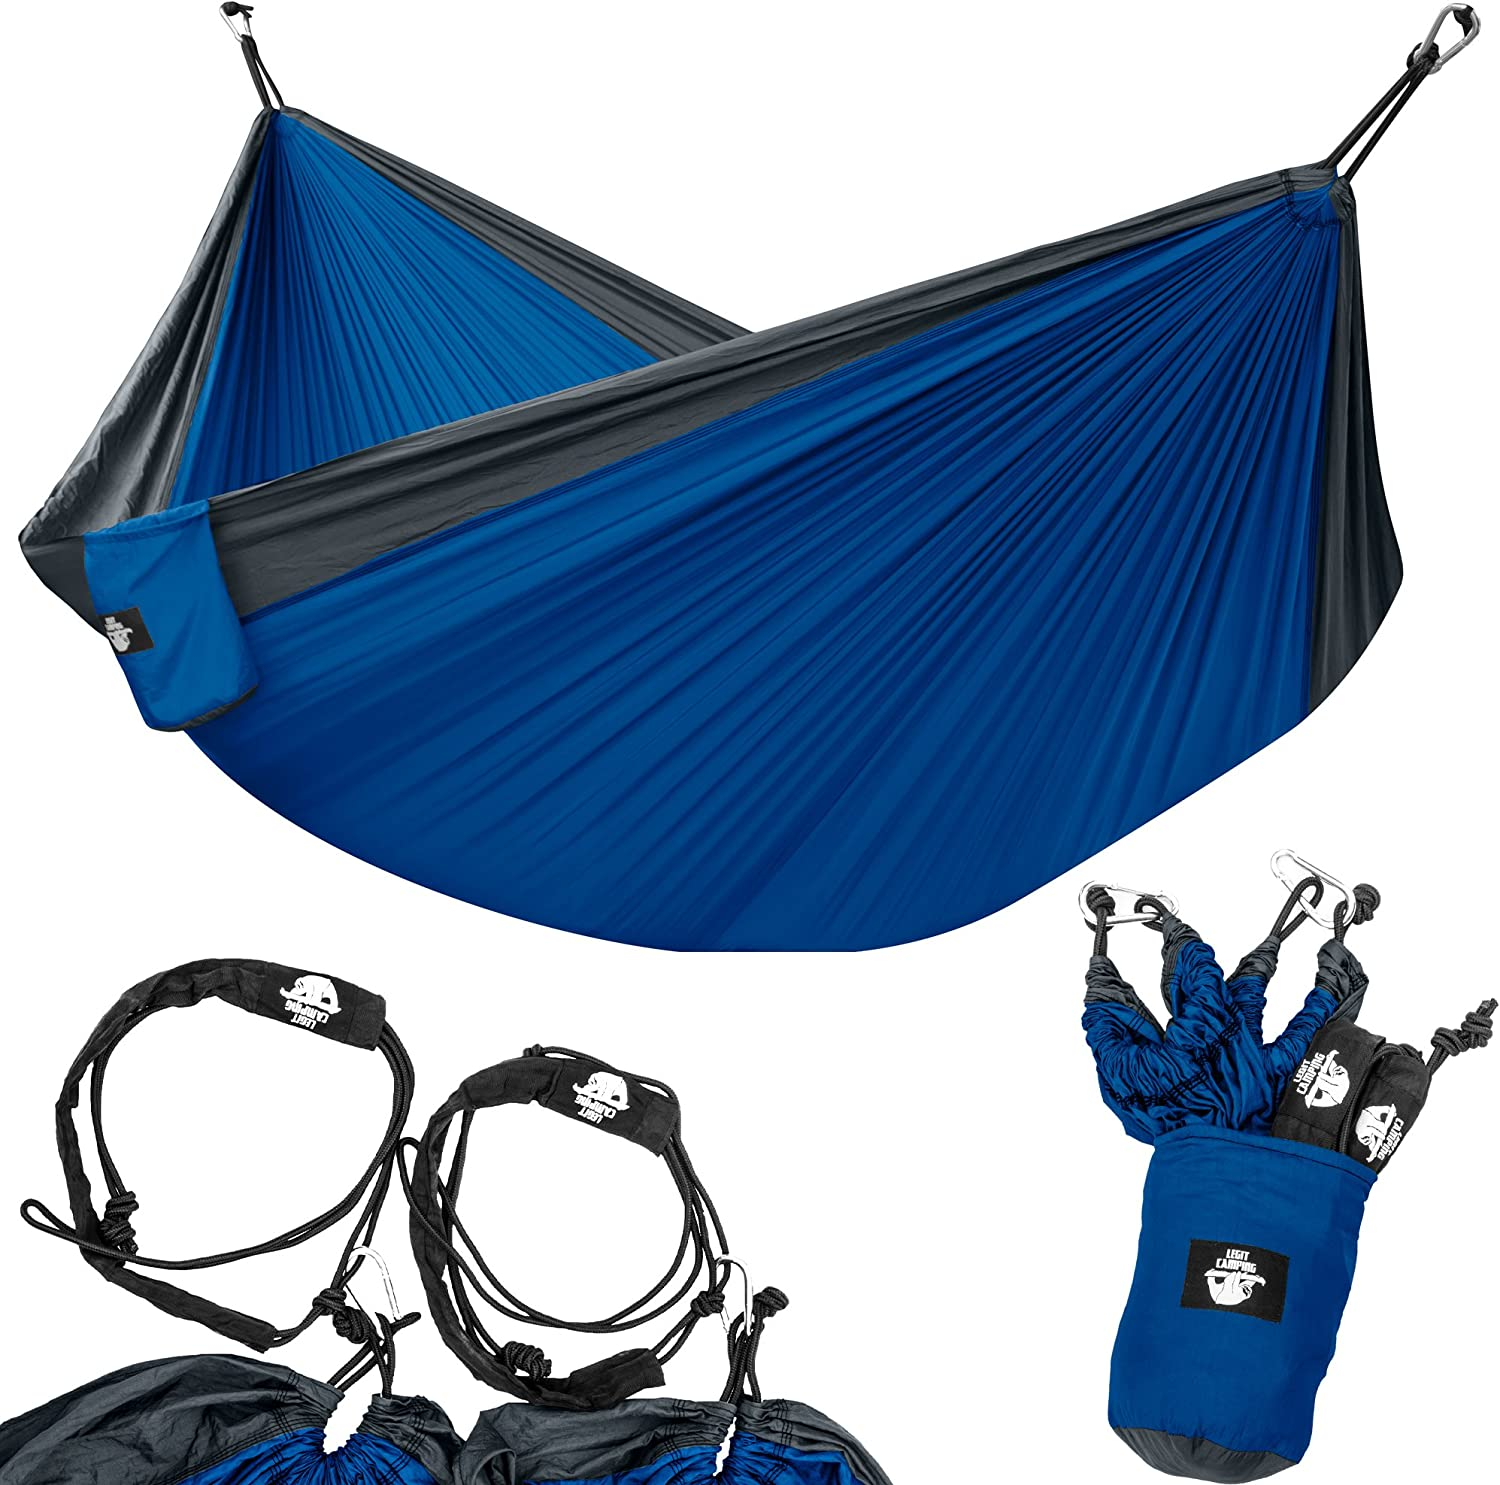 Legit Camping Portable Double Hammock - Charcoal/Royal - 400 lb Weight Capacity